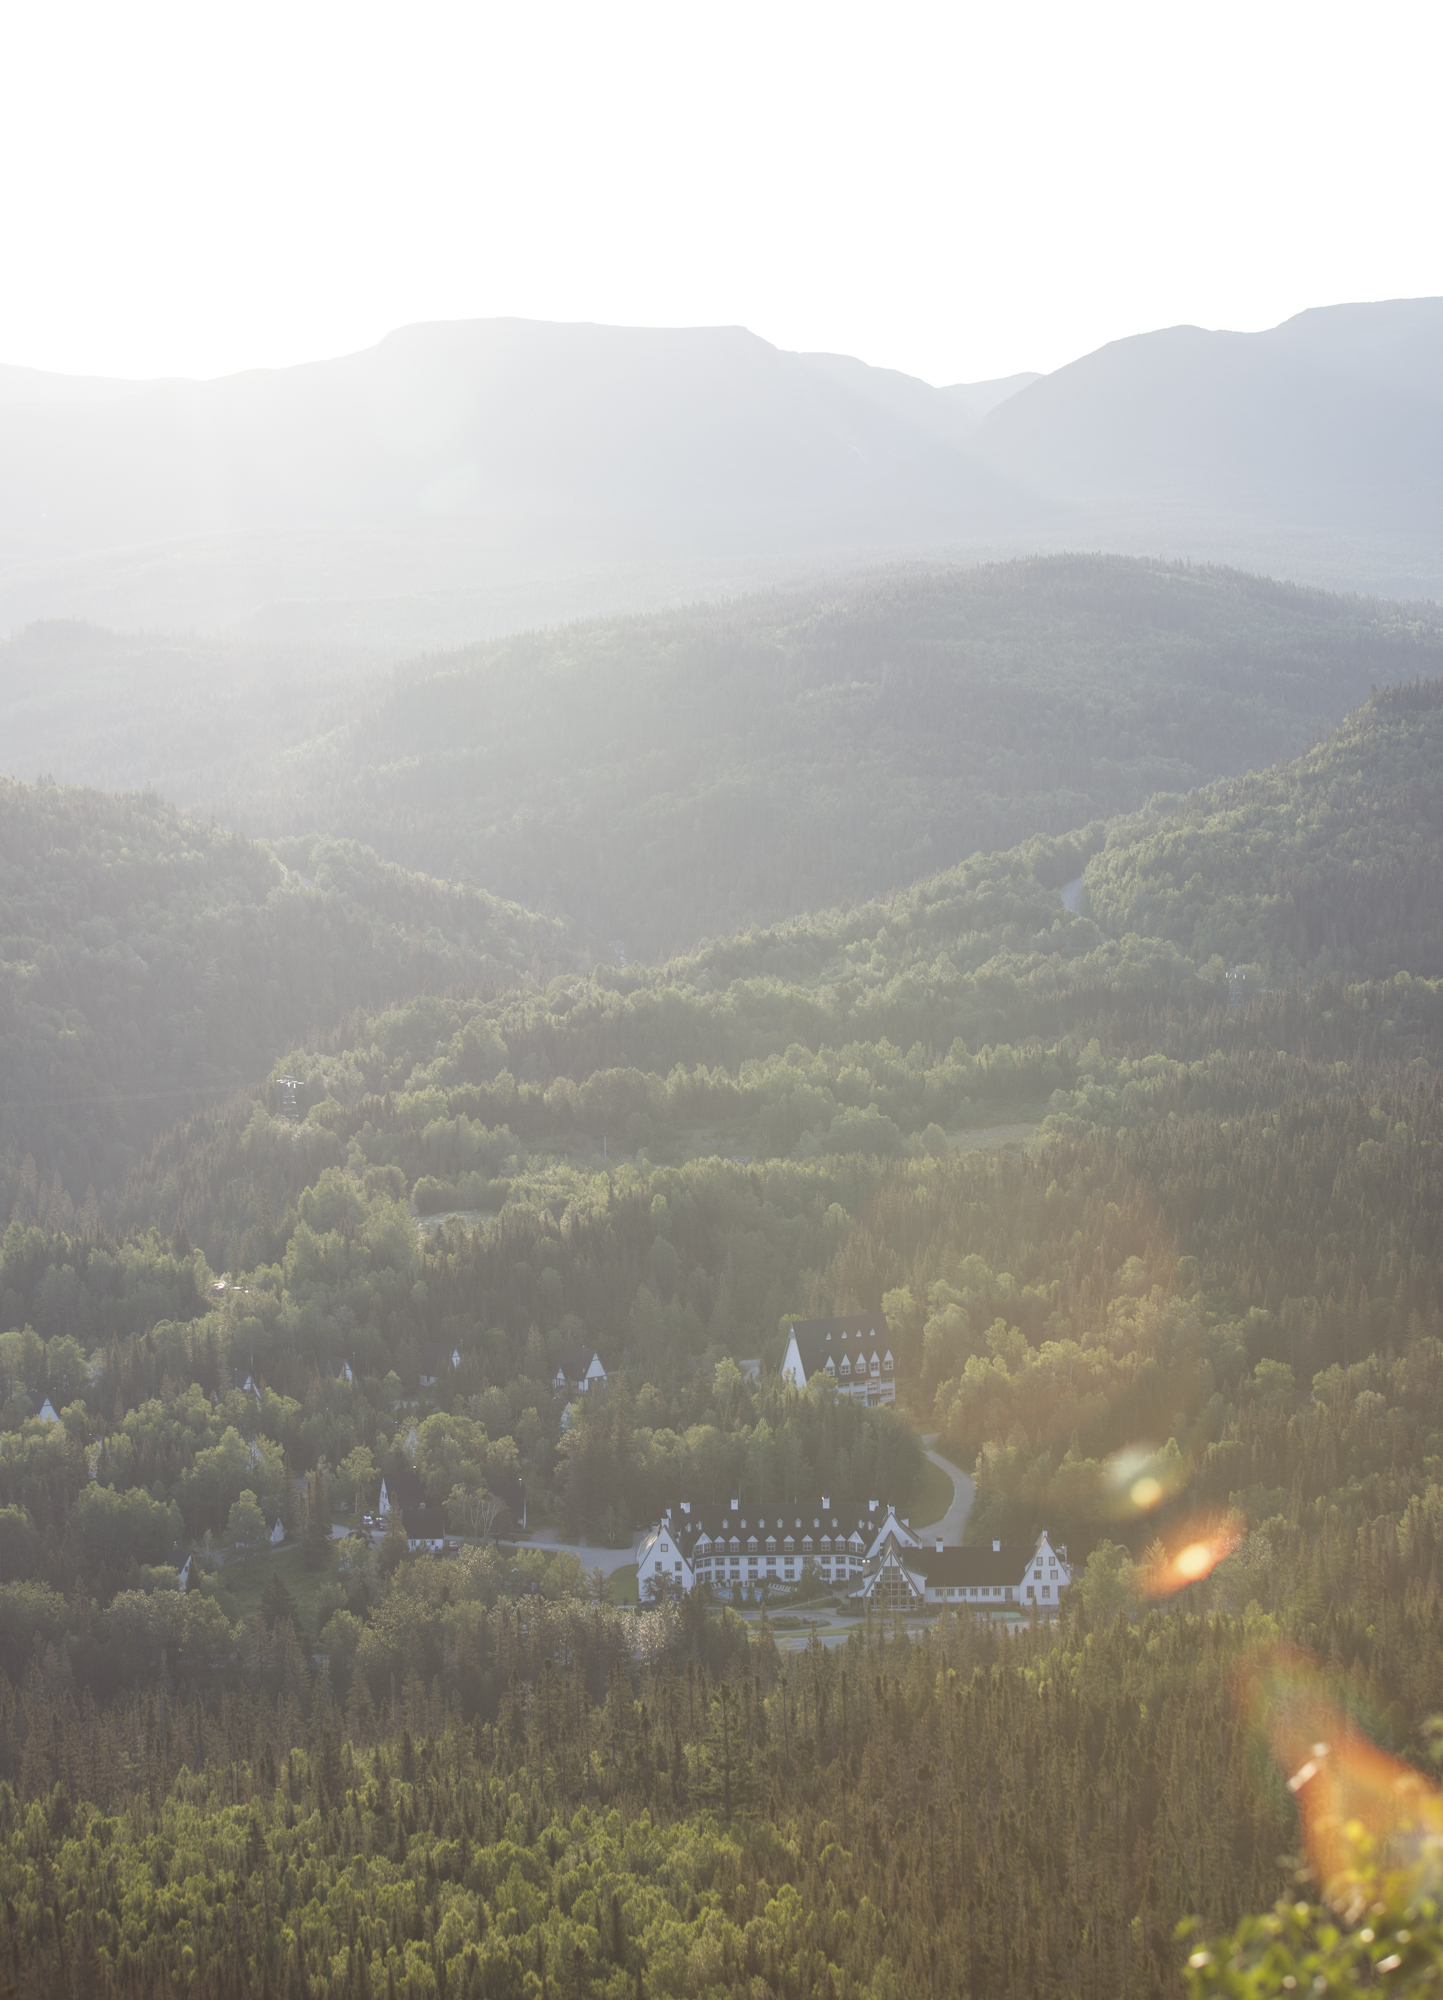 View of the Gîte, from the first view point, during sunrise.